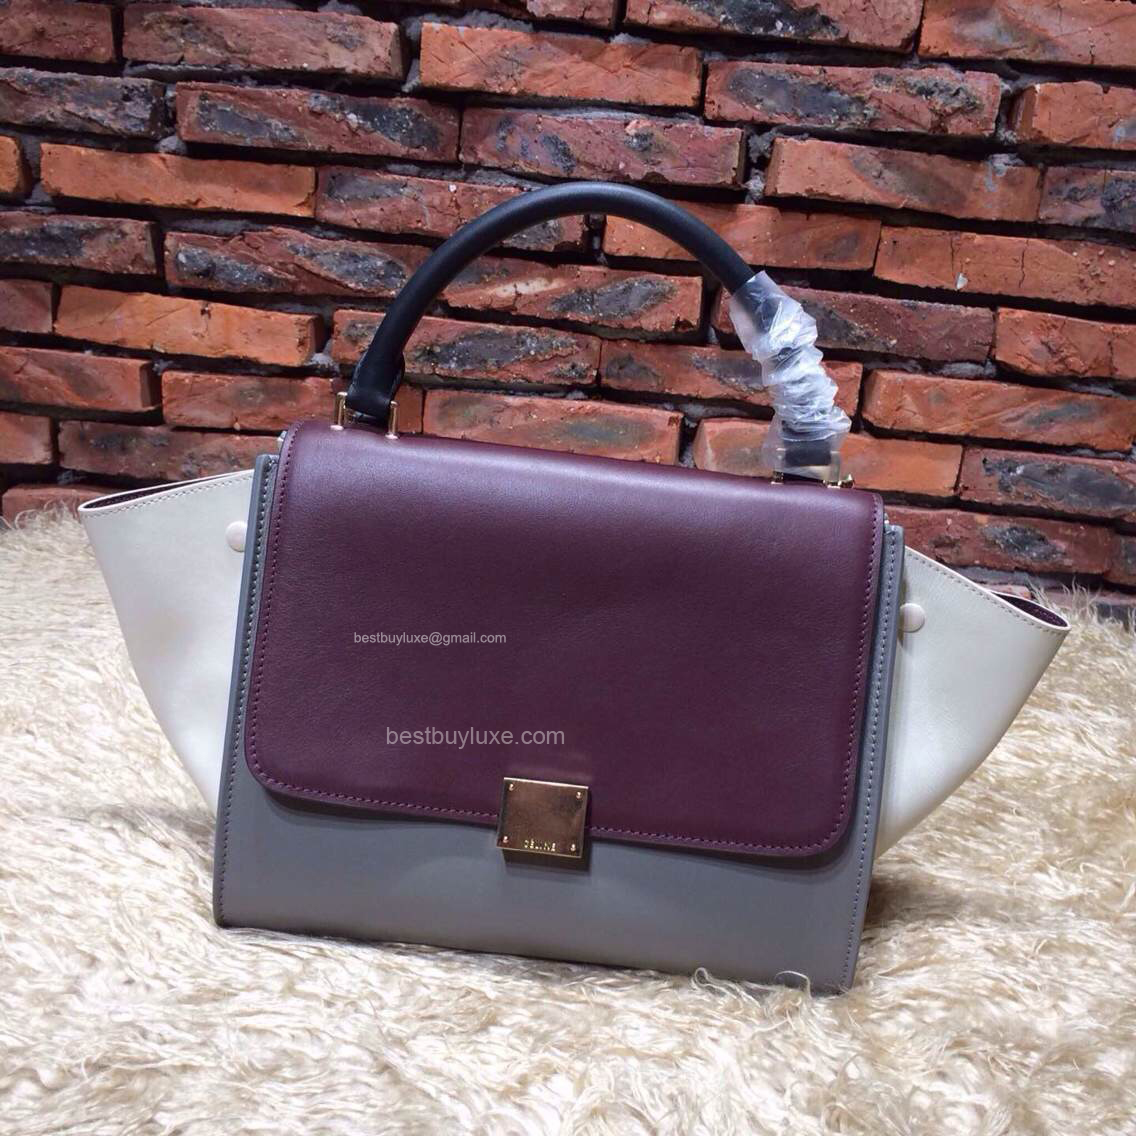 Celine Medium Trapeze Handbag in Grey Multicolour Calfskin